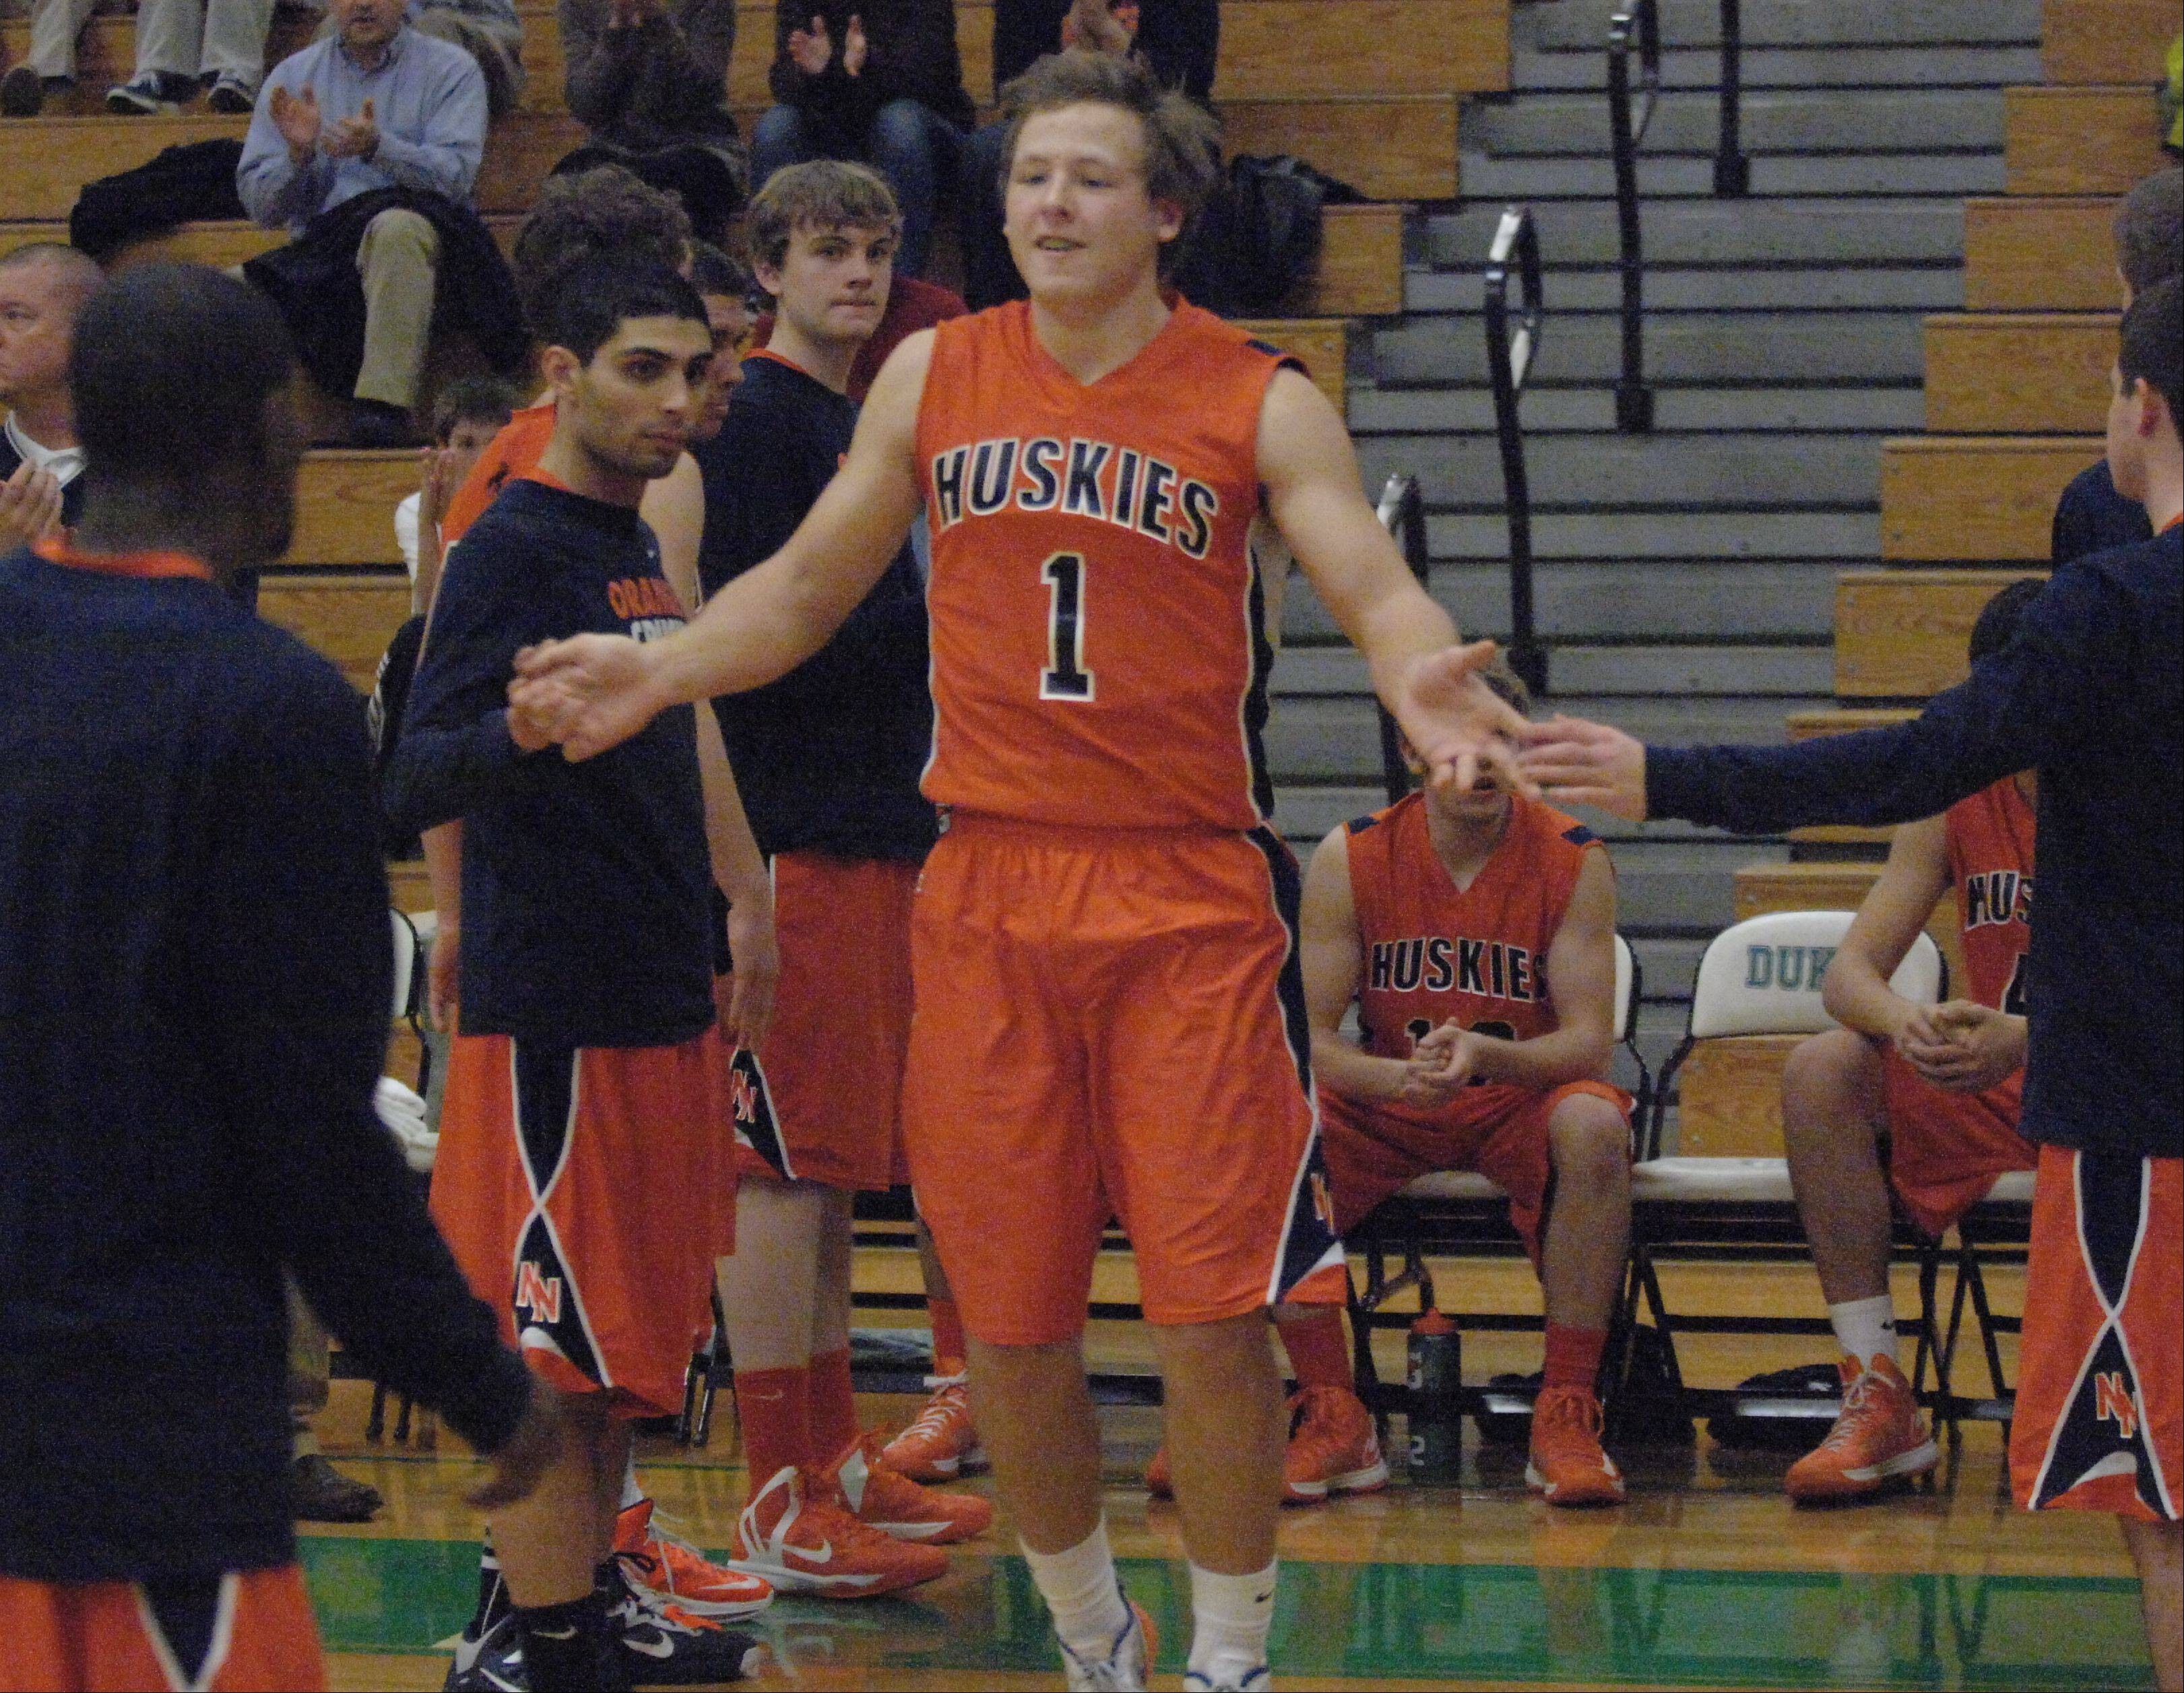 York High School hosted Naperville North Friday night for boys basketball.